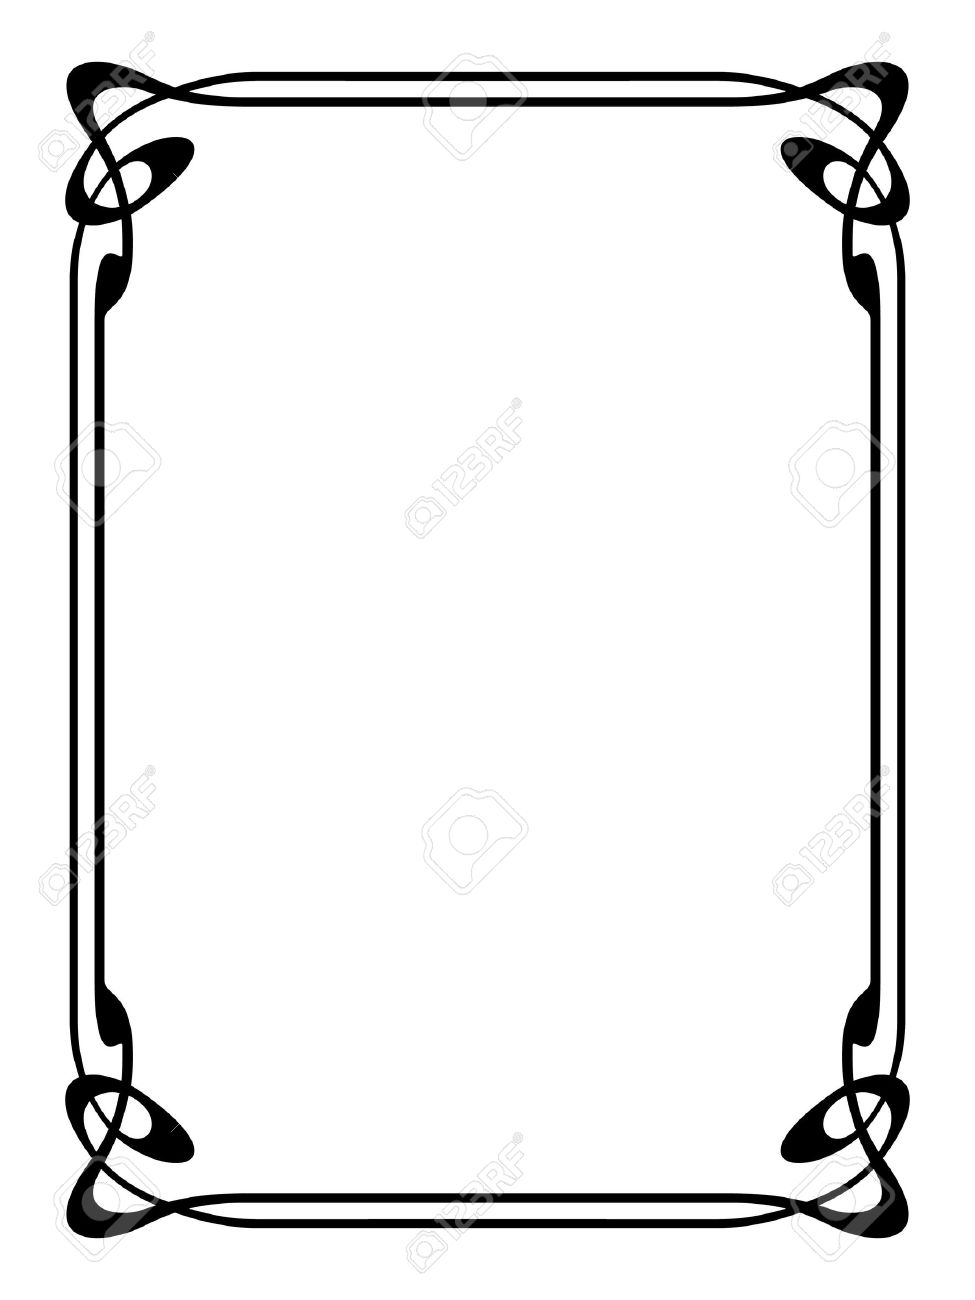 art nouveau modern ornamental decorative frame royalty free cliparts rh 123rf com vector borders illustrator vector borders and frames